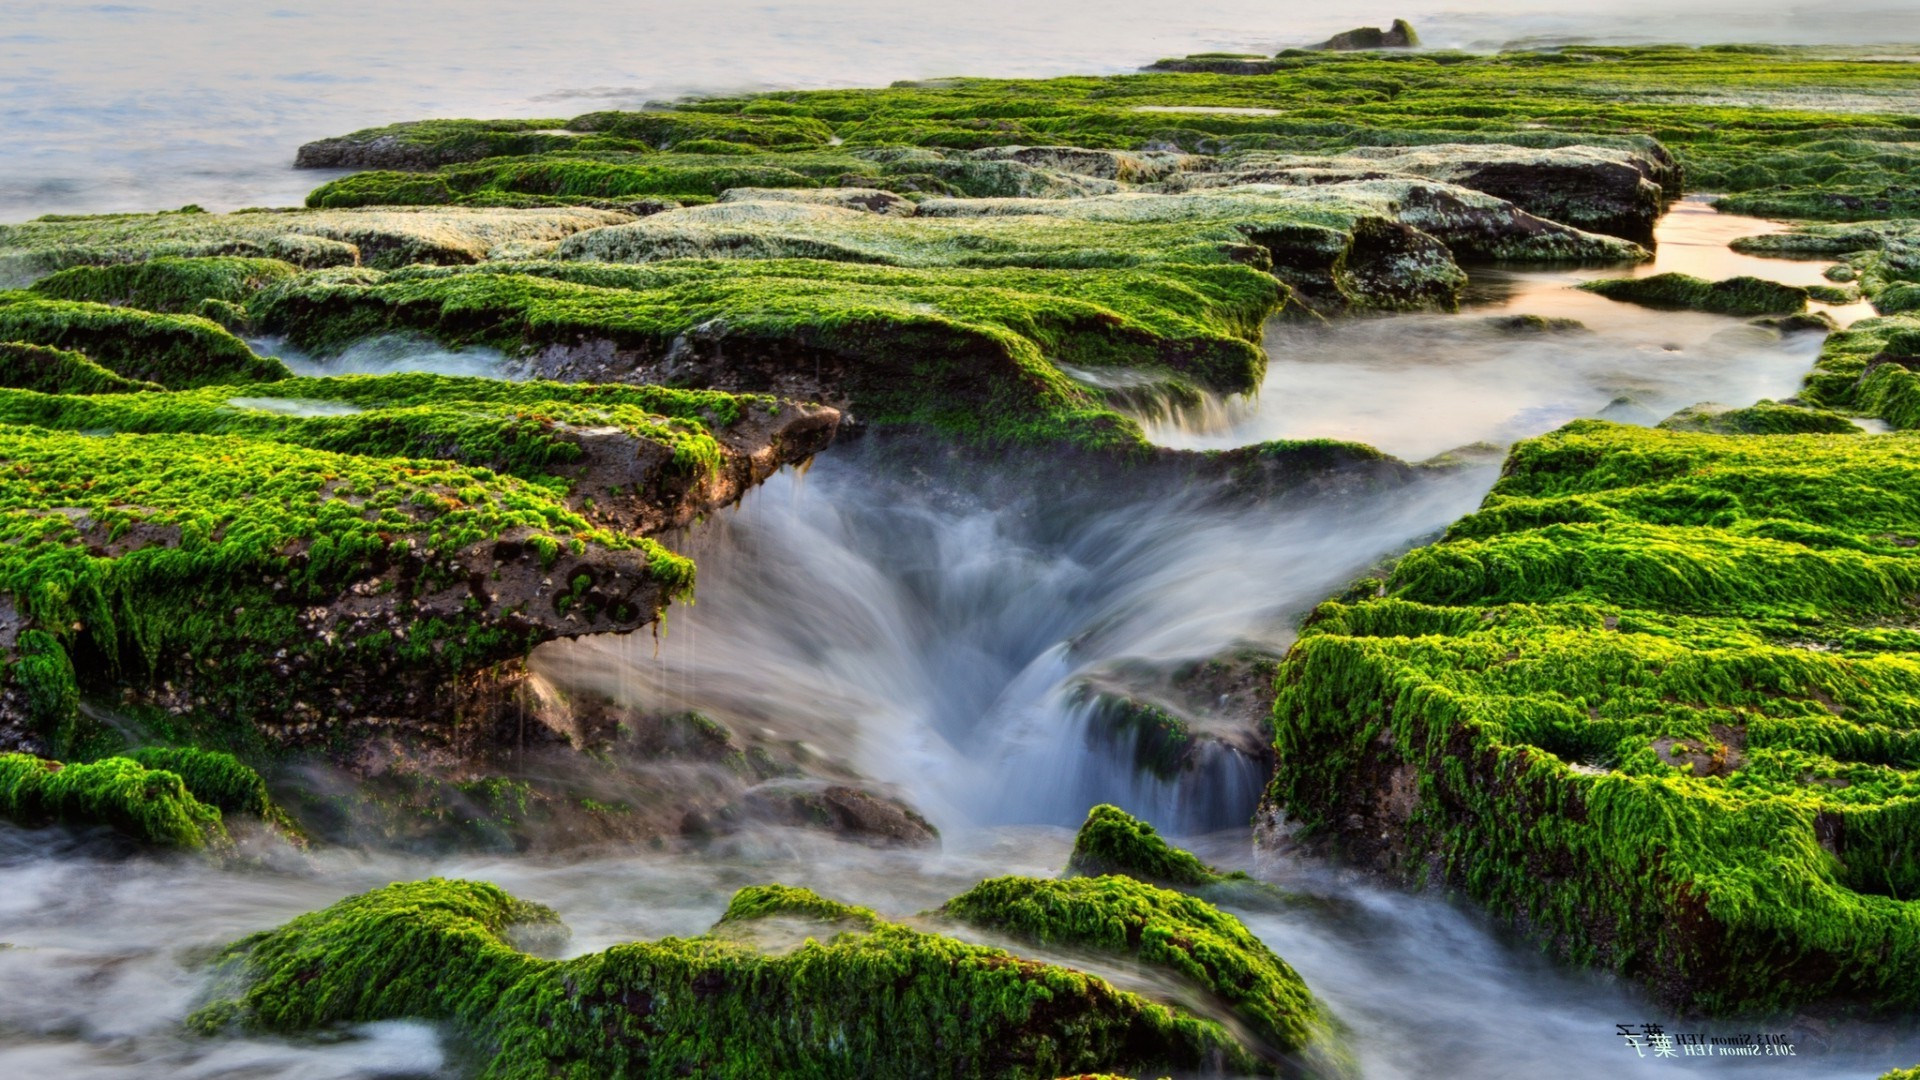 1920x1080 Natural Grass Sea Moss Streams Full HD Widescreen Wallpapers